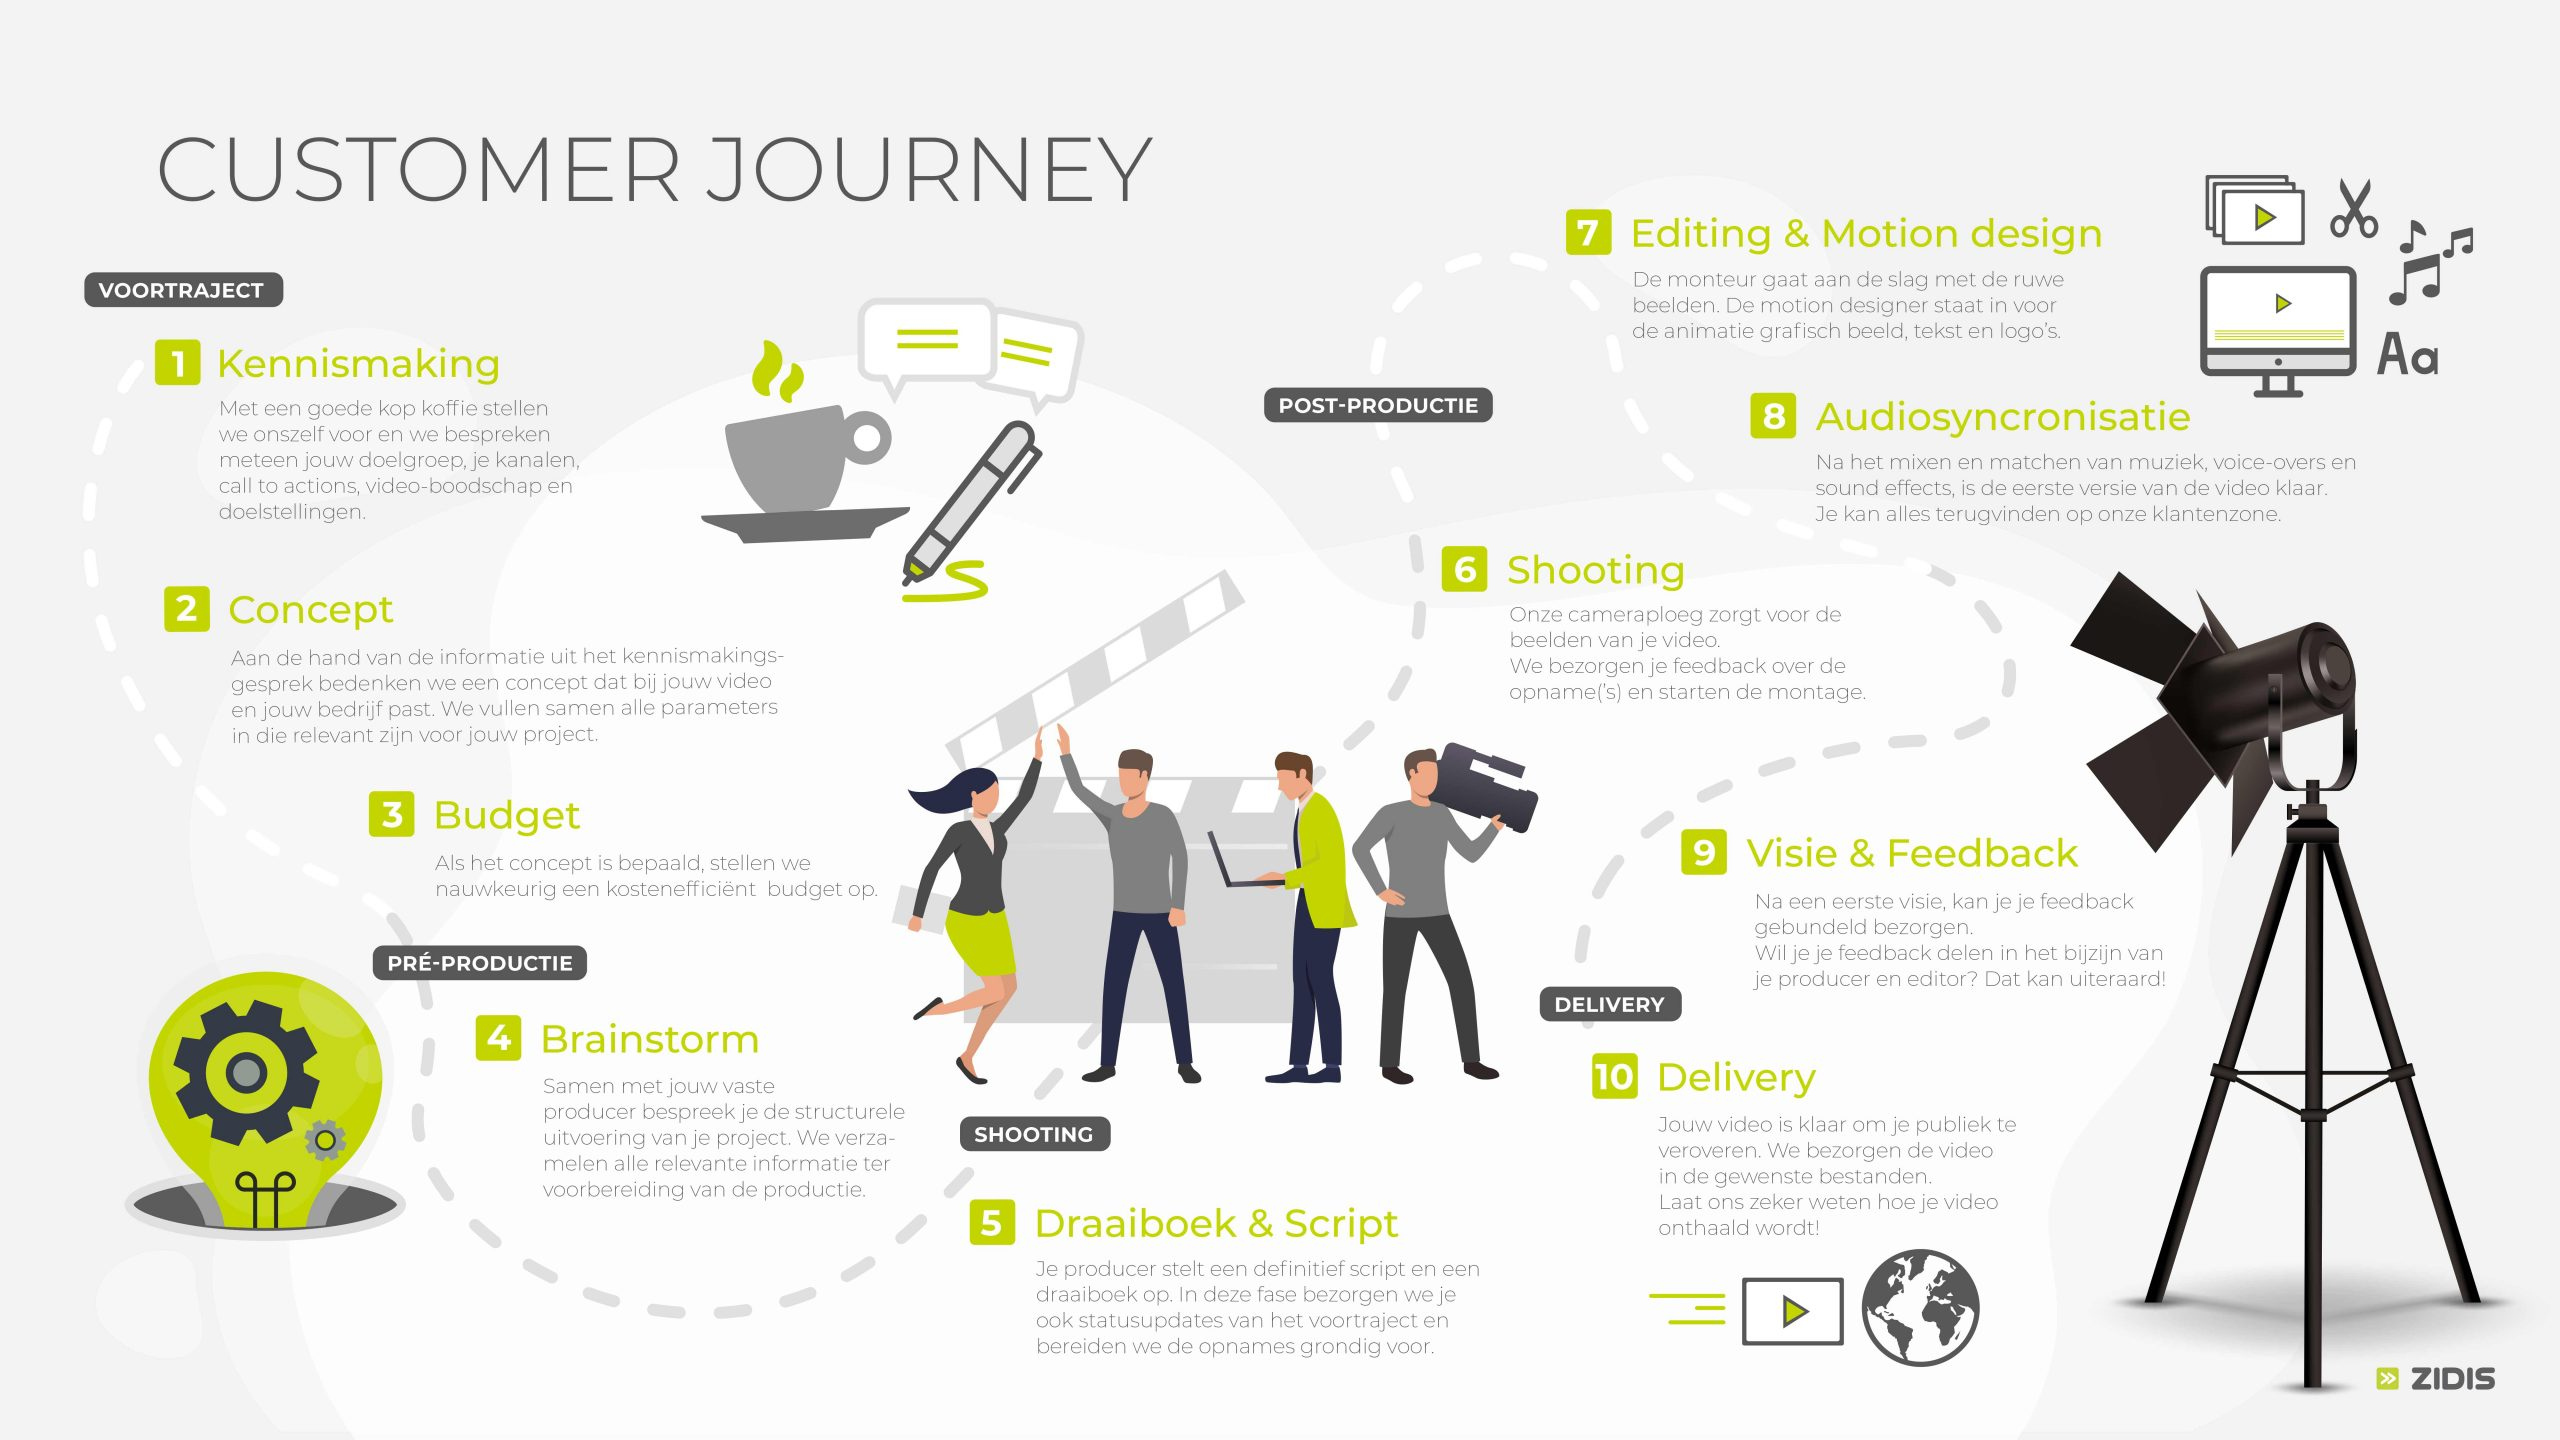 Zidis customerjourney